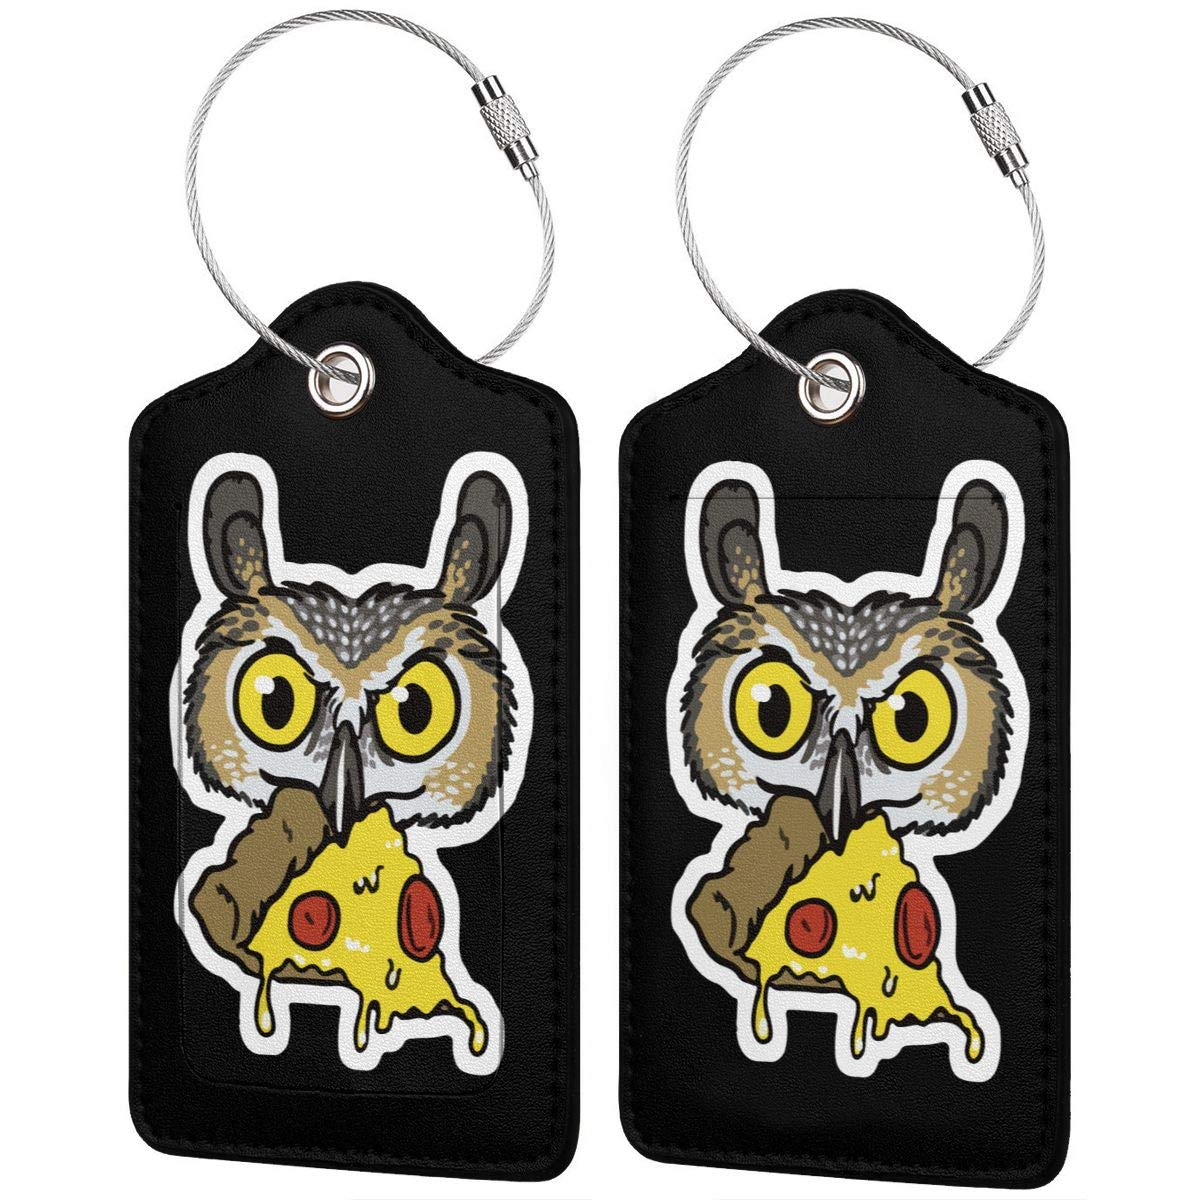 Owl Eating Pizza Travel Luggage Tags With Full Privacy Cover Leather Case And Stainless Steel Loop